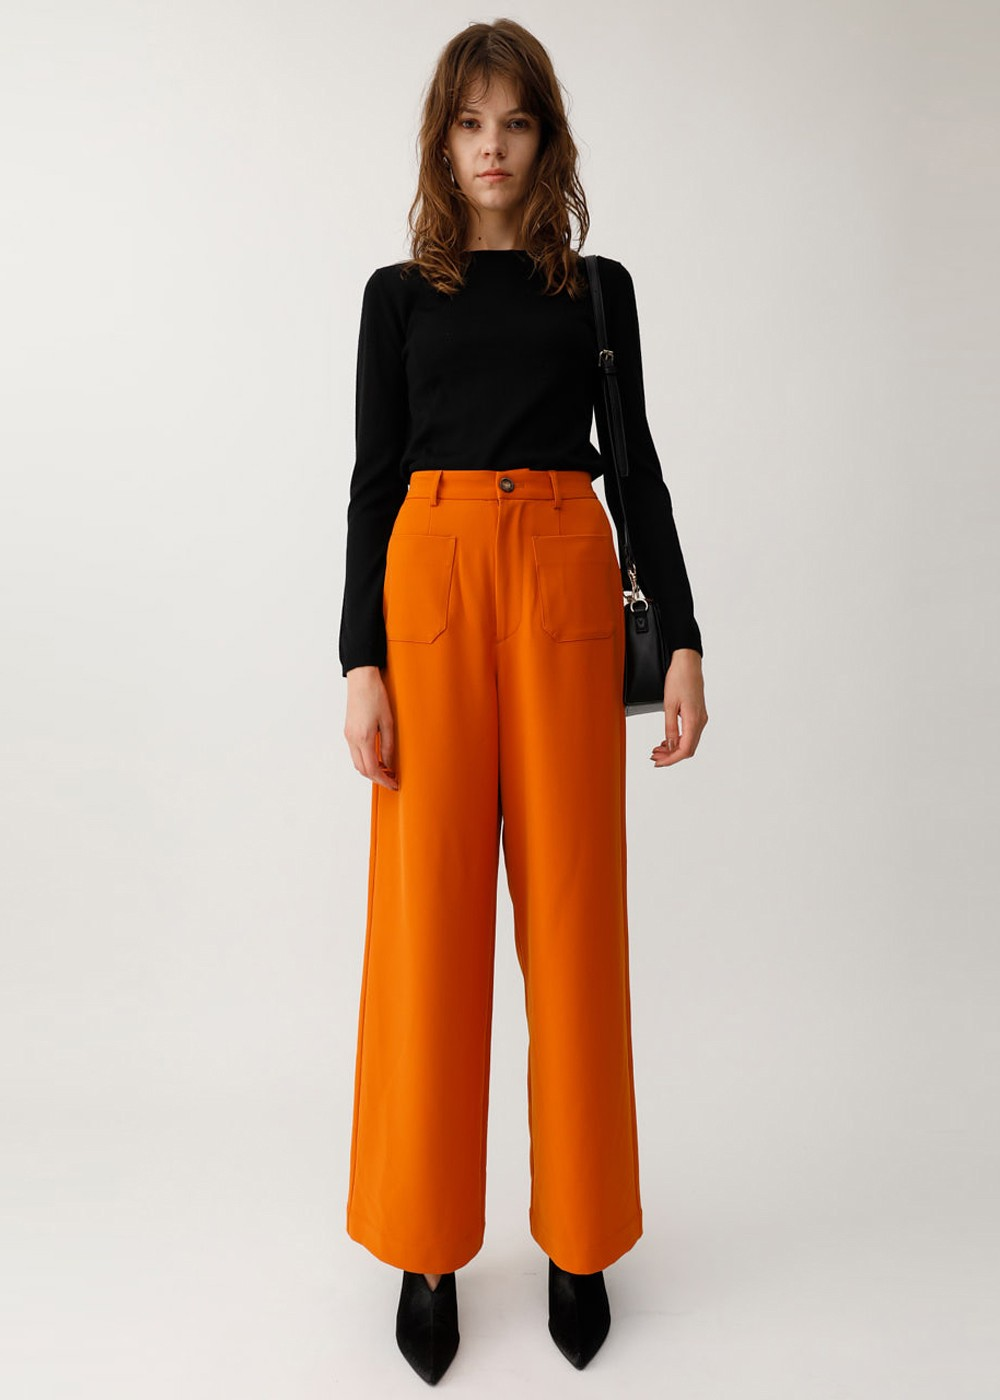 【最大60%OFF】FRONT POCKET WIDE PANTS|ORG|ワイド|MOUSSY